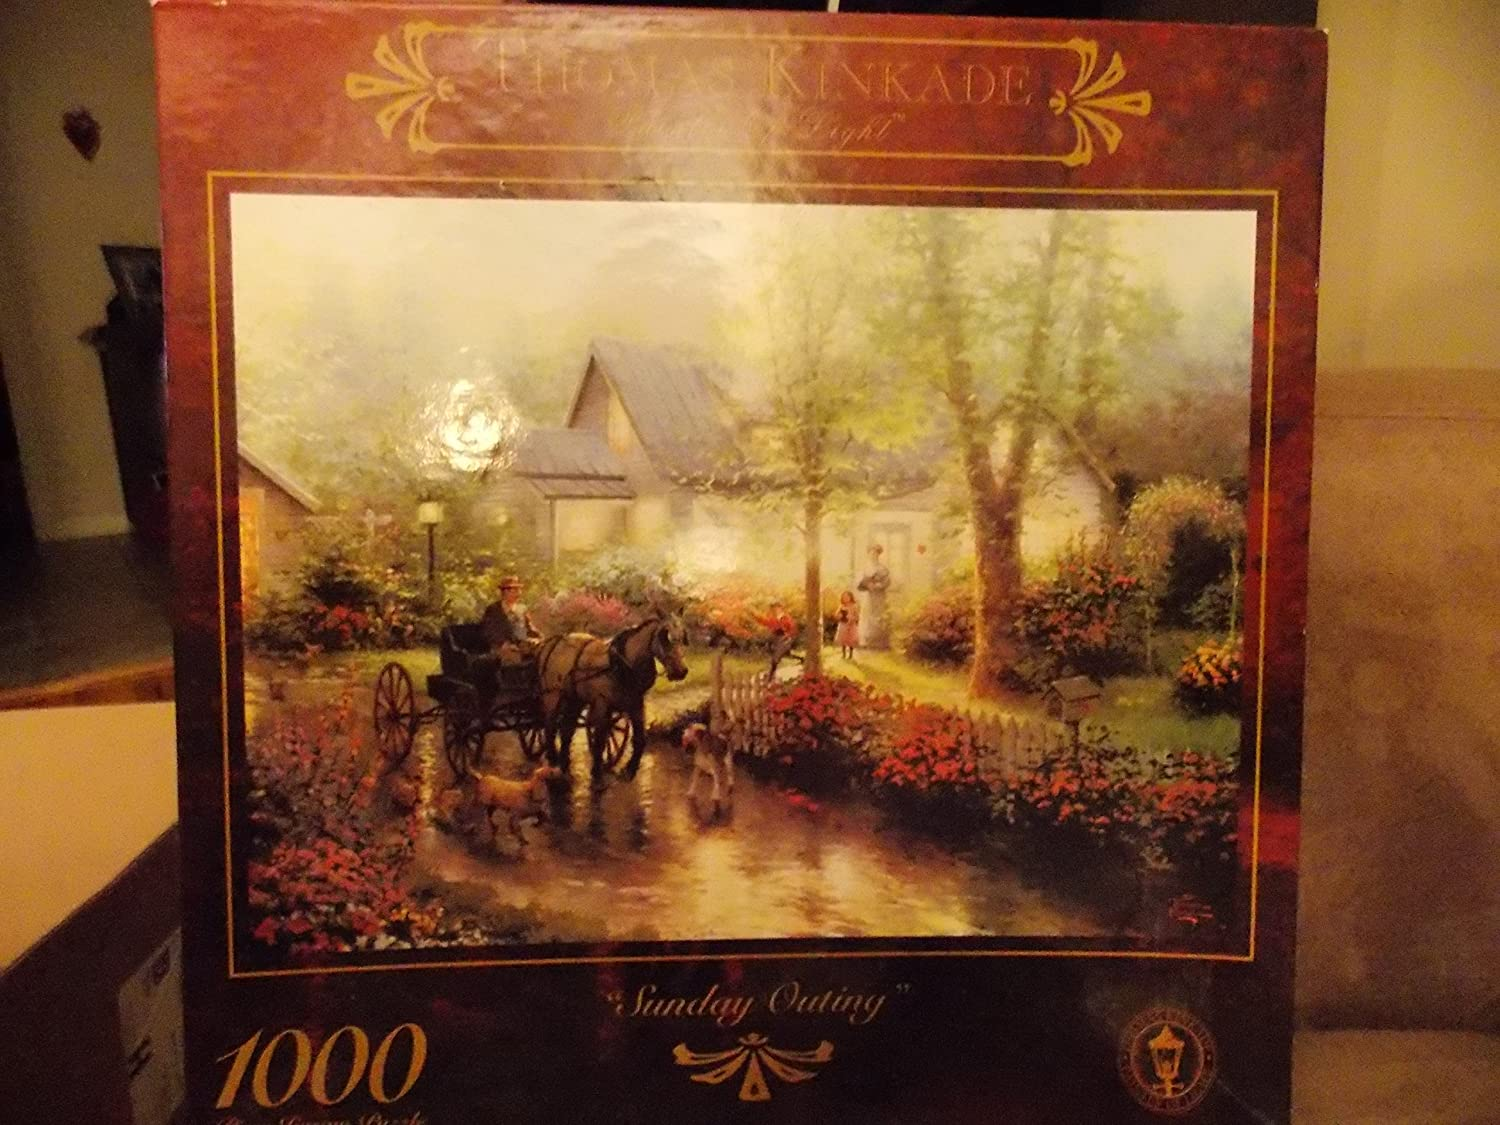 Sunday Outing 1000 Piece Thomas Kinkade Puzzle